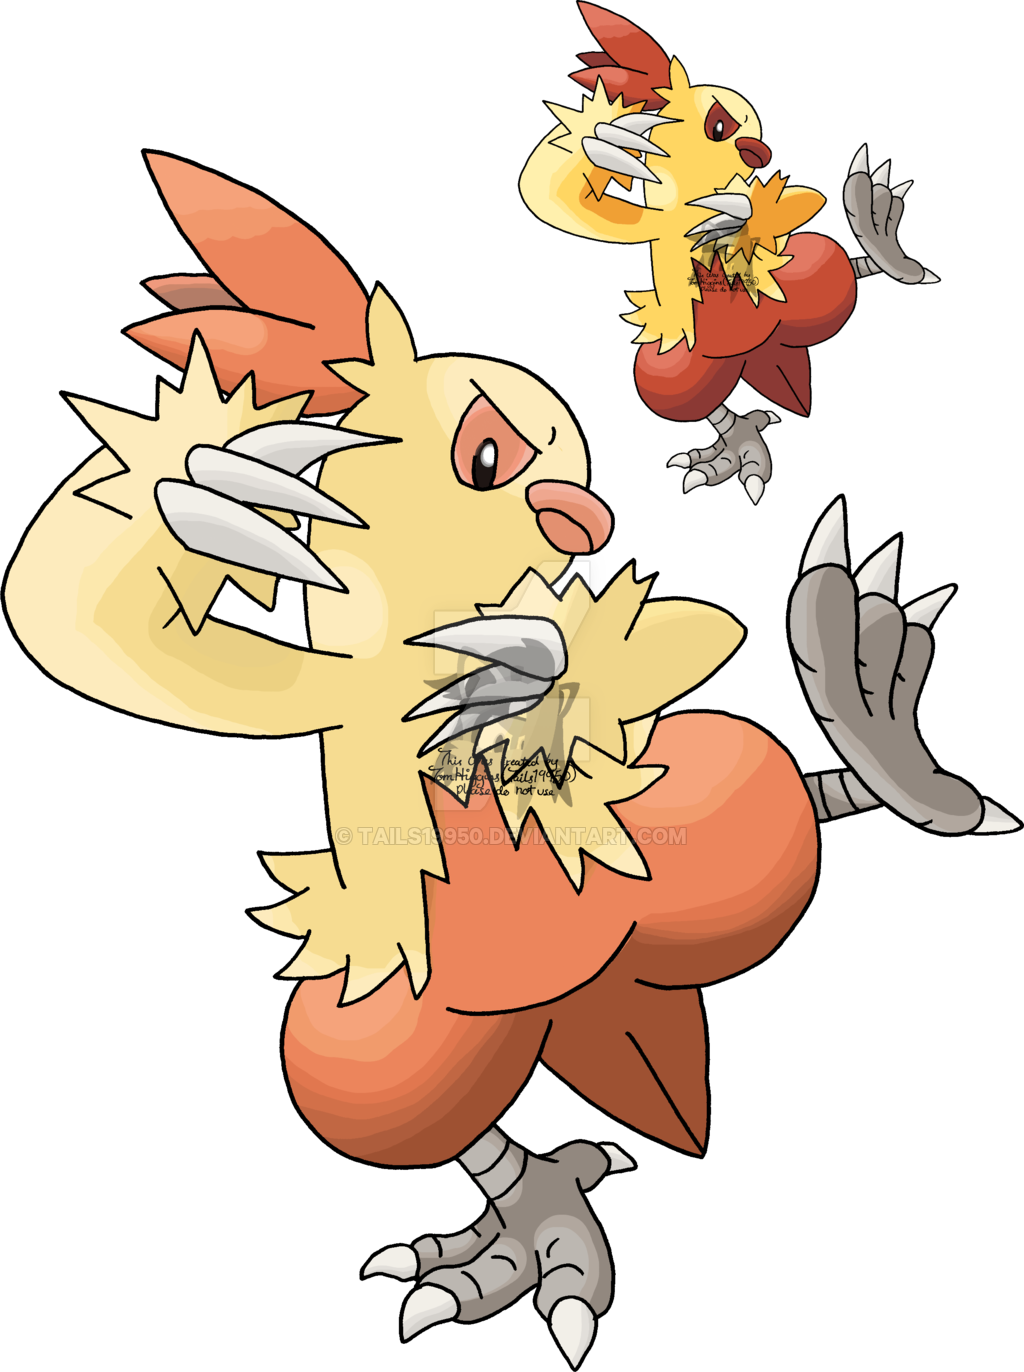 Cyndaquil Japanese ヒノアラシ Hinoarashi is the Firetype Starter Pokémon of the Johto region Cyndaquil is a small quadrupedal Pokémon that resembles an